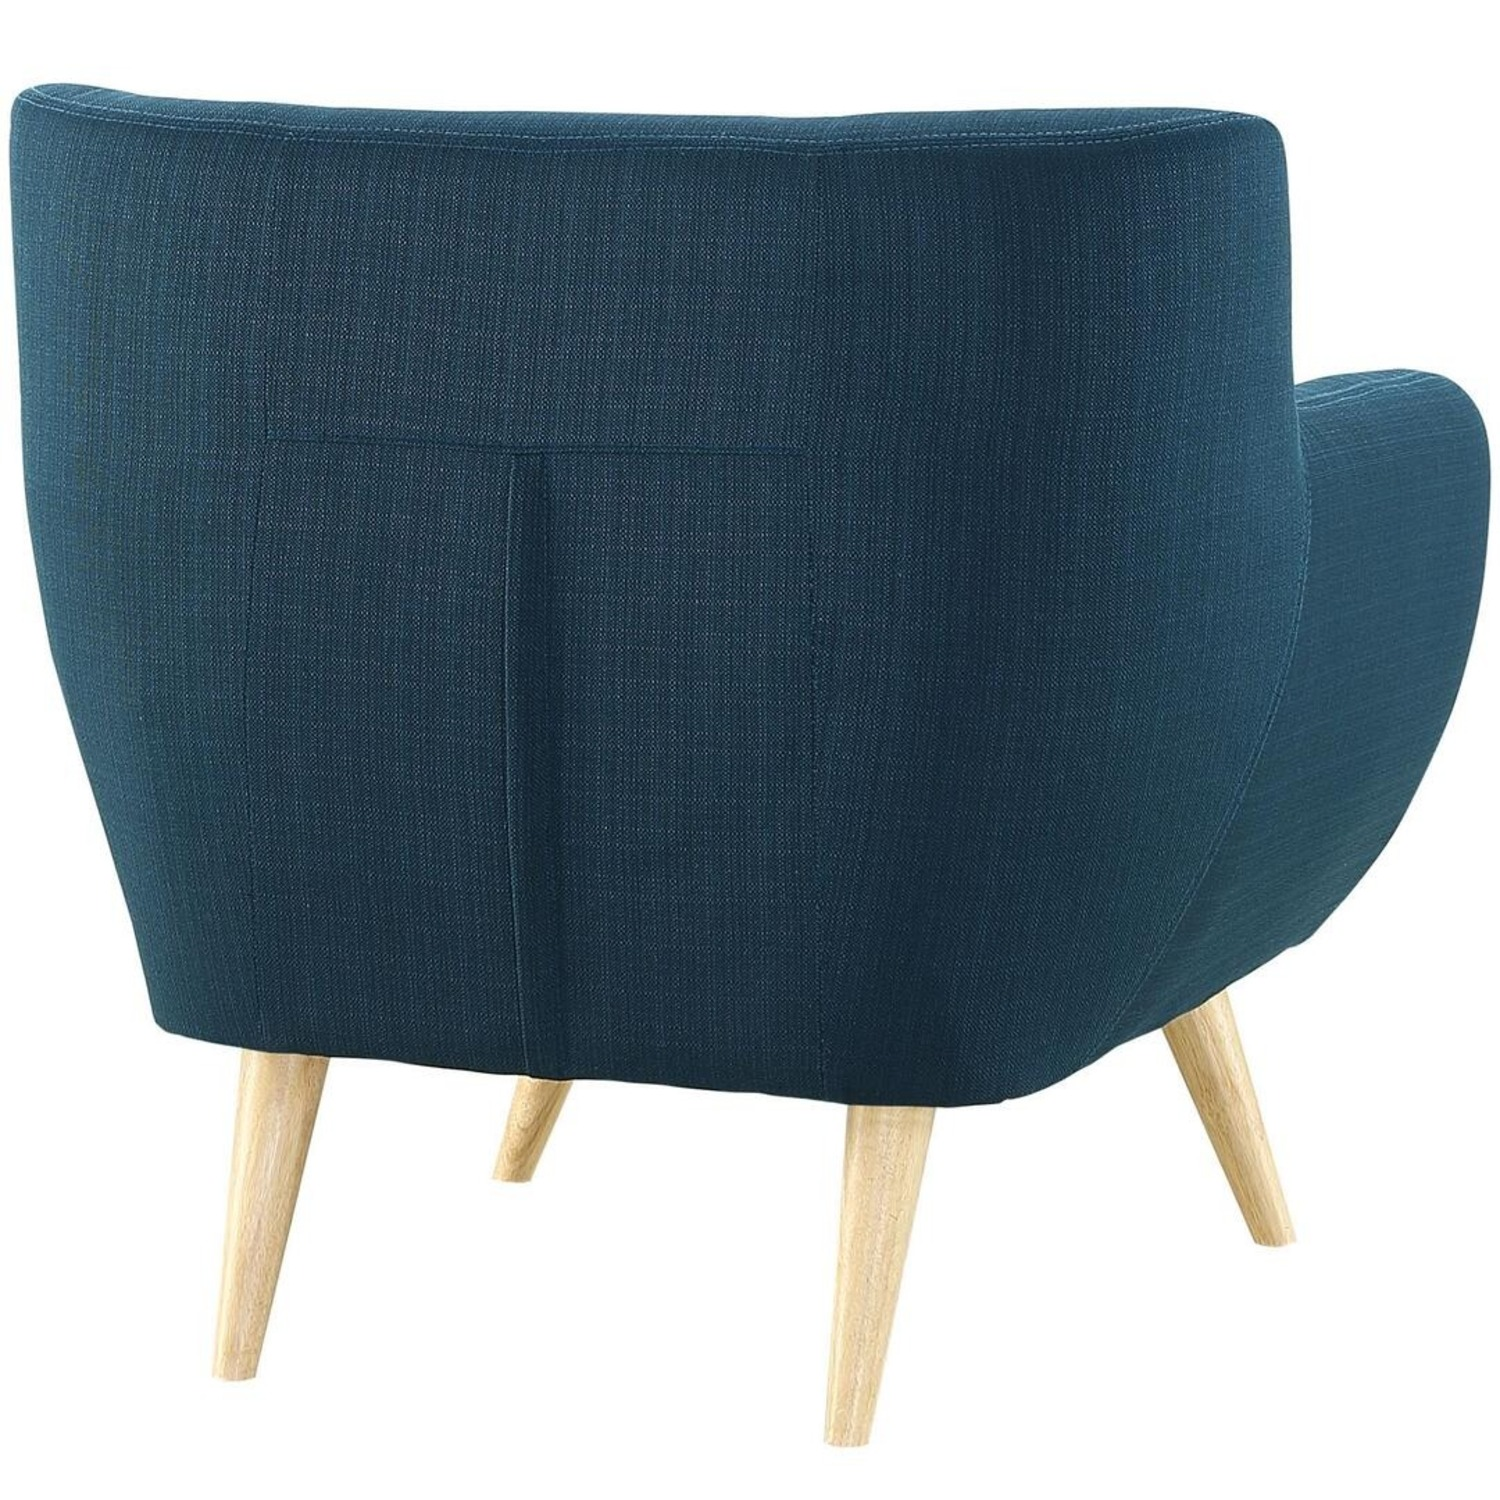 Armchair In Azure Upholstery W/ Natural Wood Legs - image-3